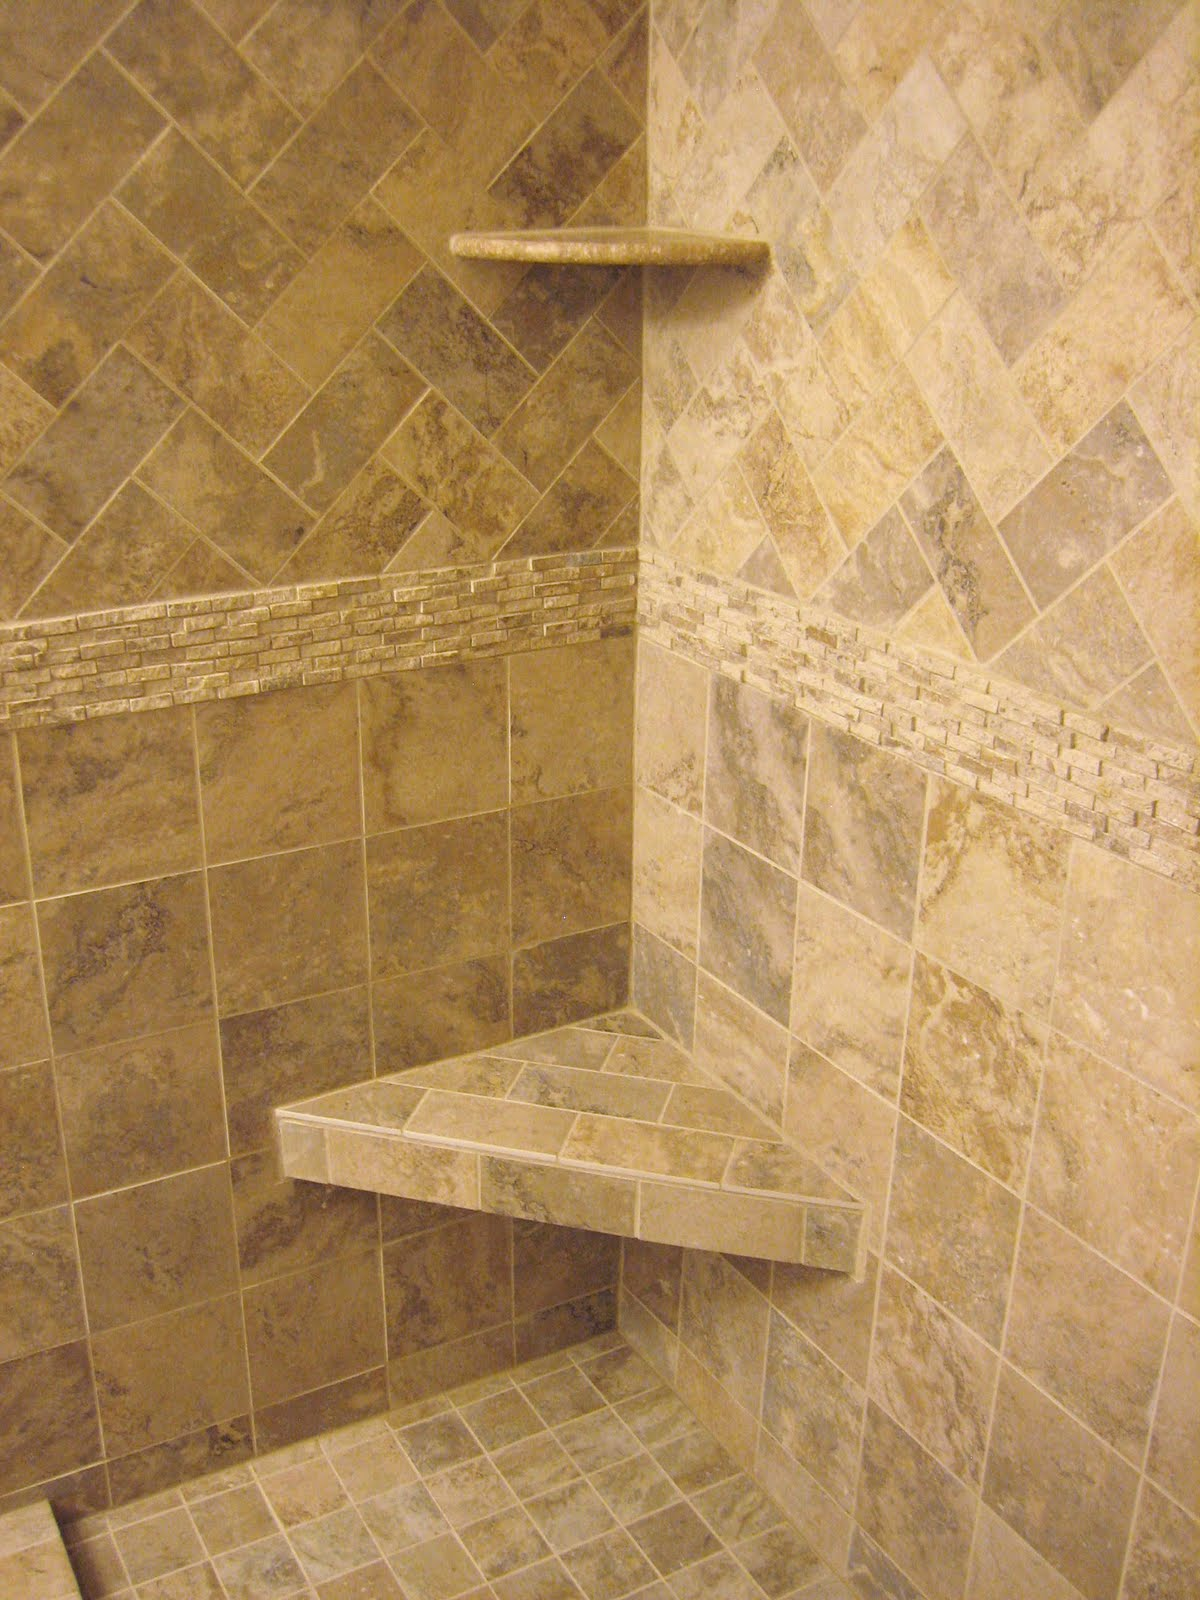 H winter showroom blog luxury master bath remodel athena for Bathroom designs tiles